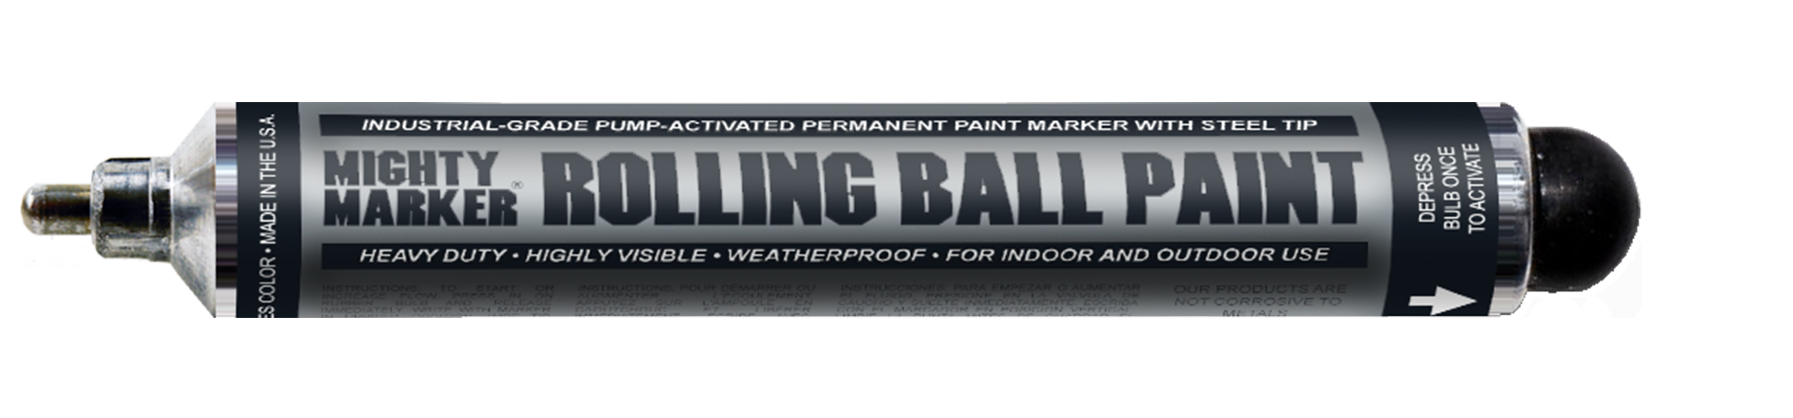 Mighty Marker Rolling Ball Paint